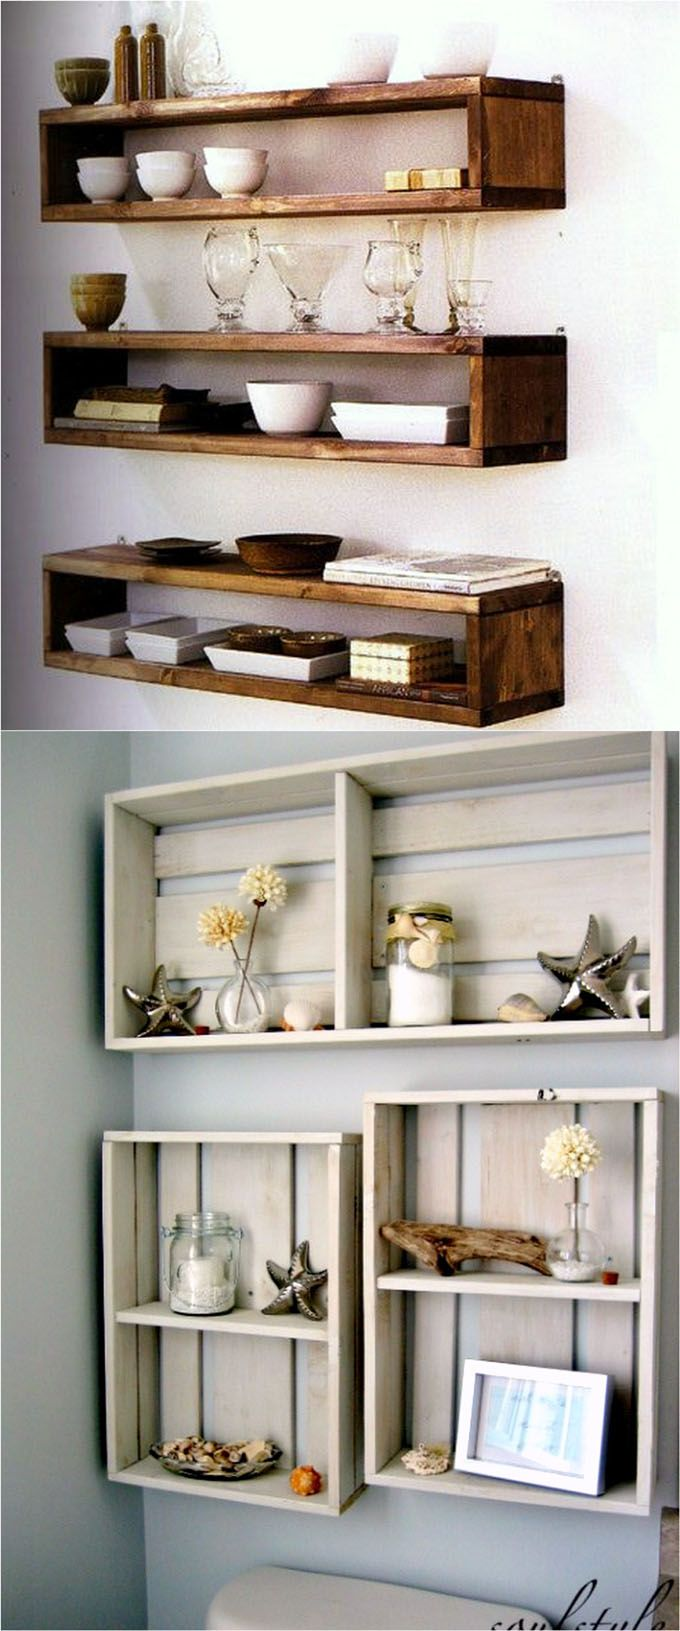 16 Easy And Stylish Diy Floating Shelves Wall Shelves Floating Shelves Diy Easy Home Decor Diy Furniture